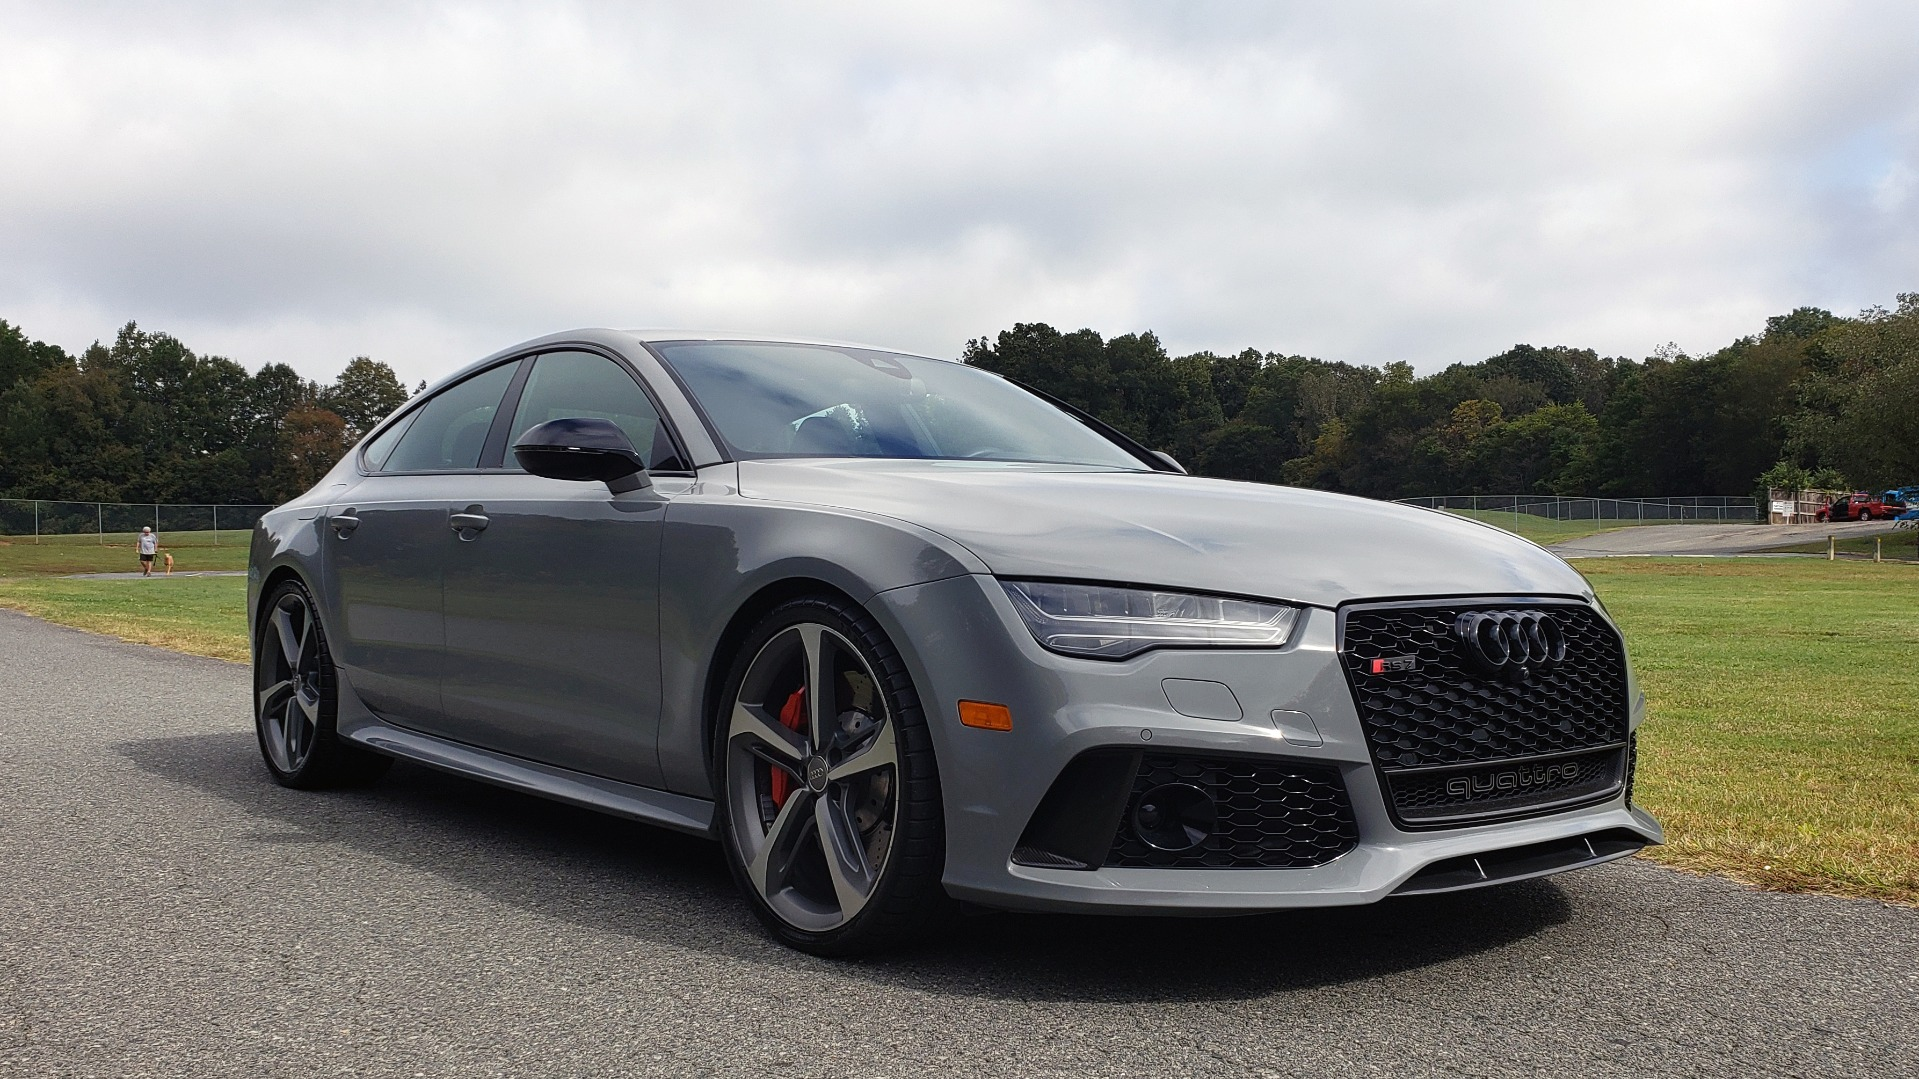 Used 2018 Audi RS 7 4.0T TIPTRONIC / CARBON OPTIC / DRVR ASST / NAV / REARVIEW / 750HP+ for sale Sold at Formula Imports in Charlotte NC 28227 5